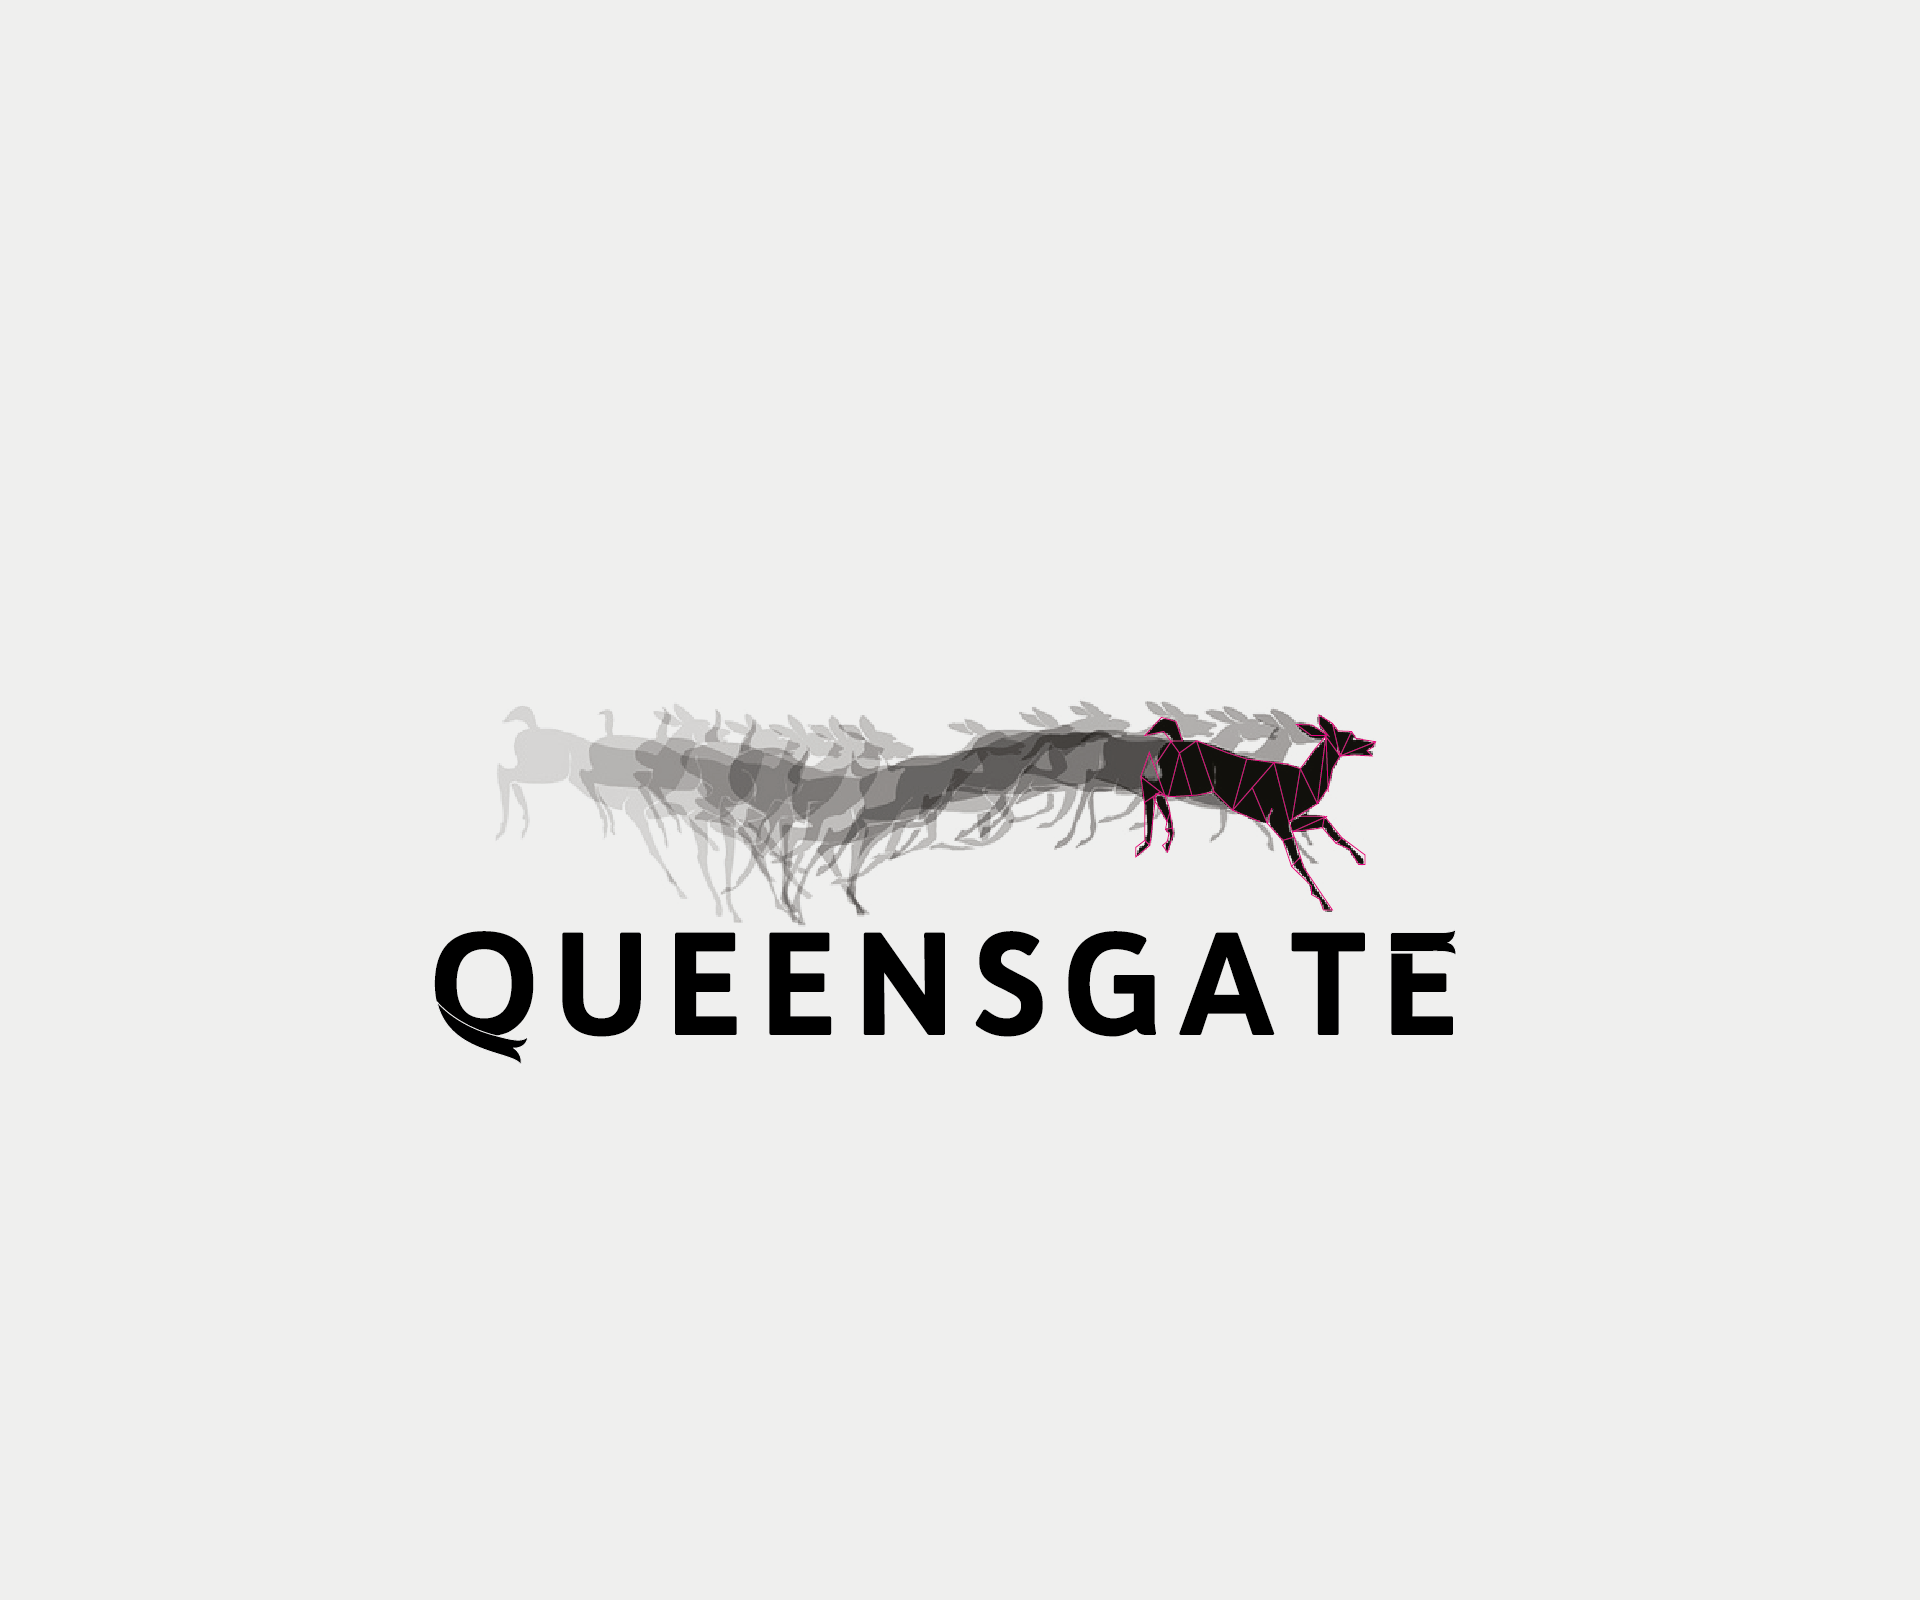 Queensgate